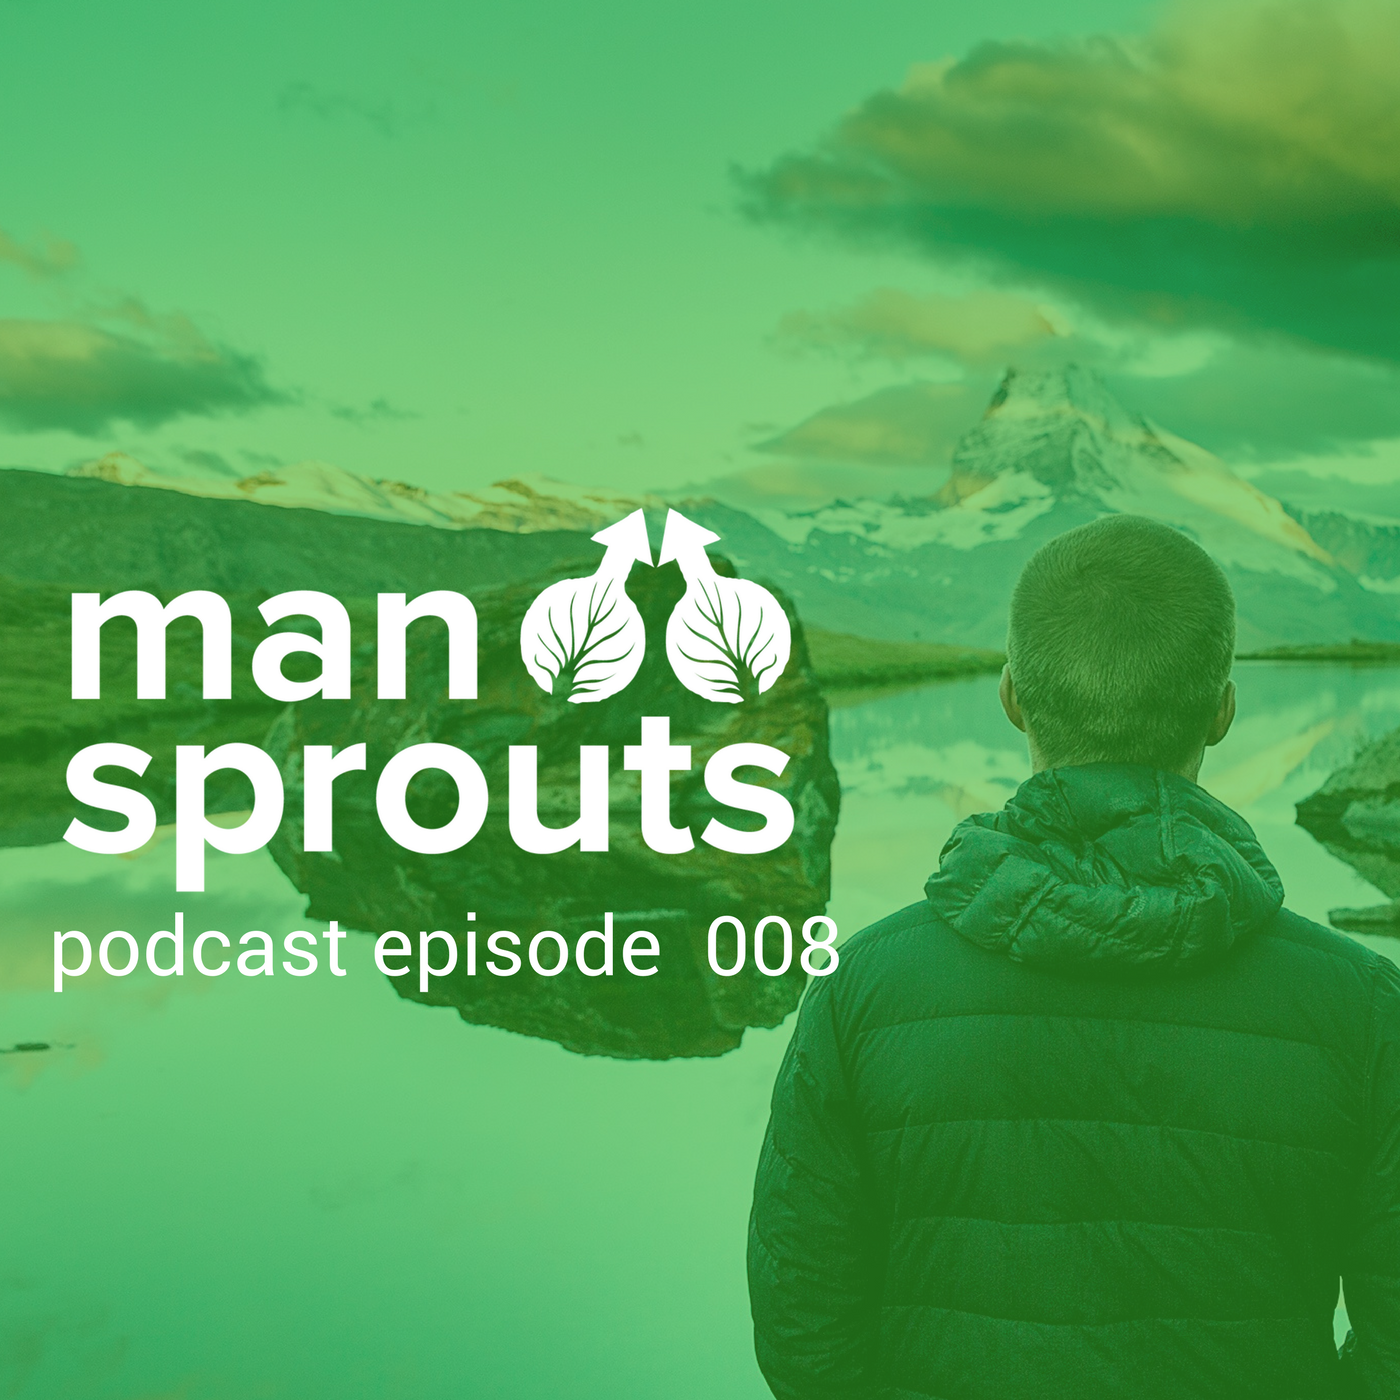 episode 8 of the man sprouts podcast - dealing with high stress